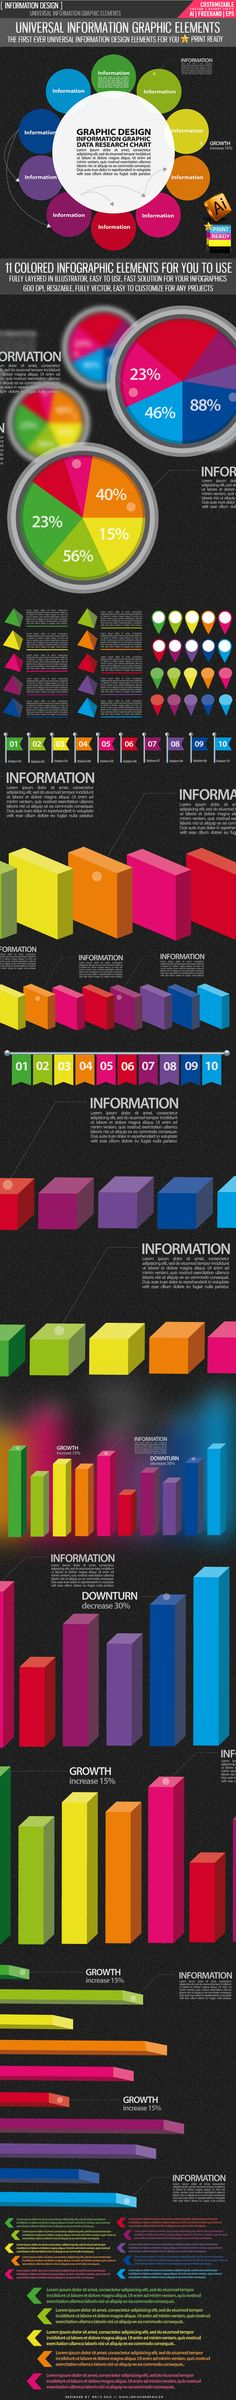 A set of universal information graphic elements, a total of 11 different type of information design elements for your information used.